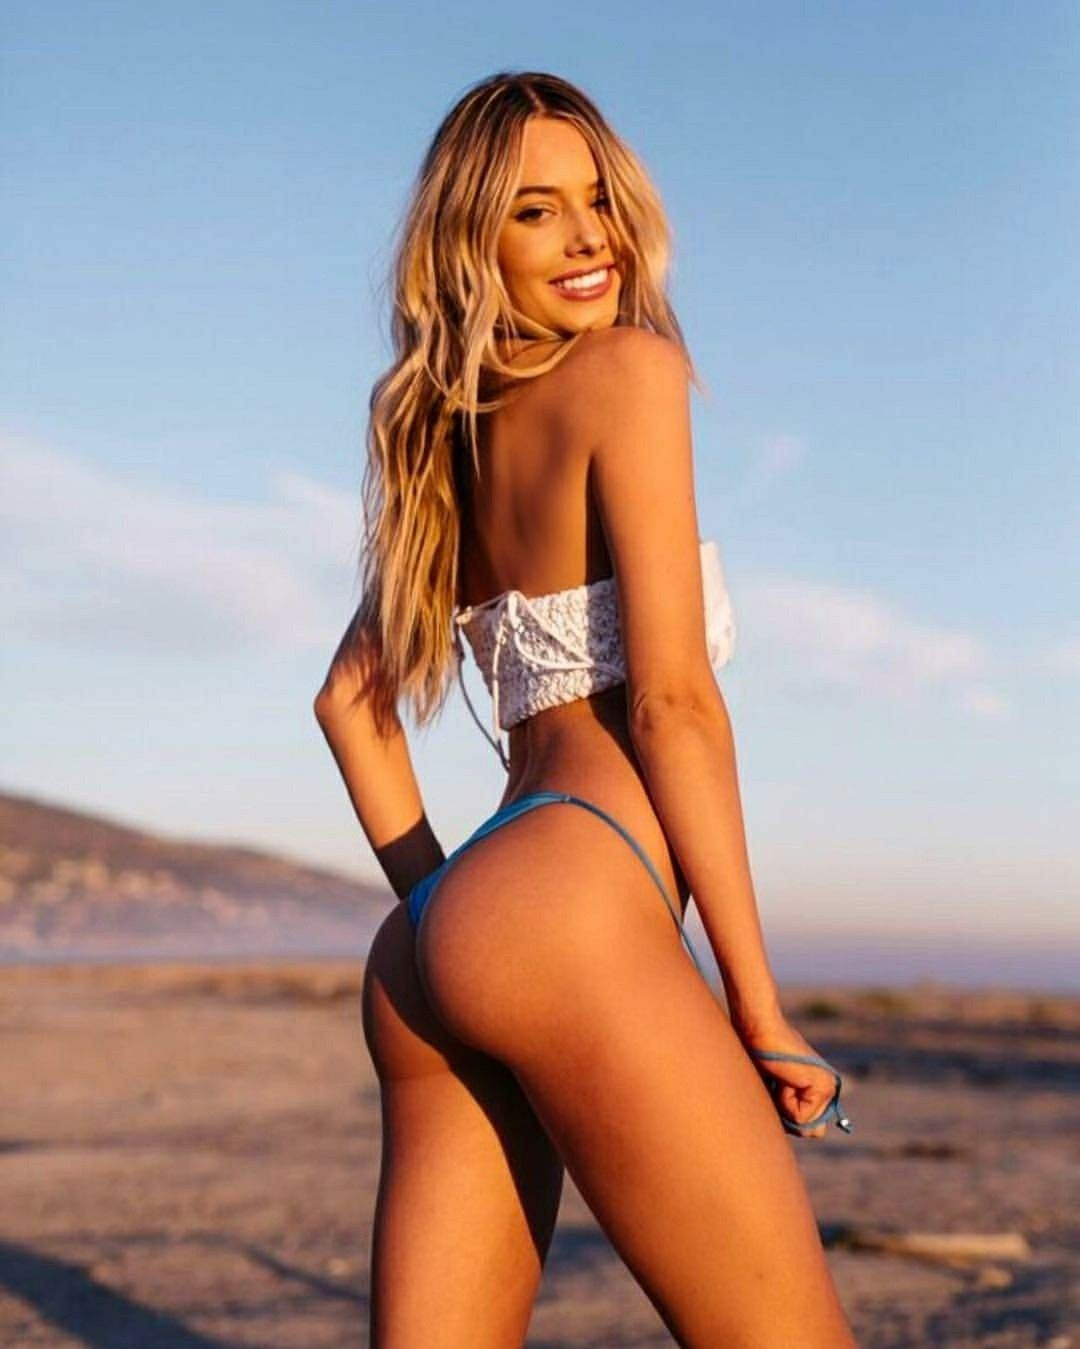 Hot Celeste Bright nudes (71 foto and video), Ass, Cleavage, Feet, swimsuit 2018